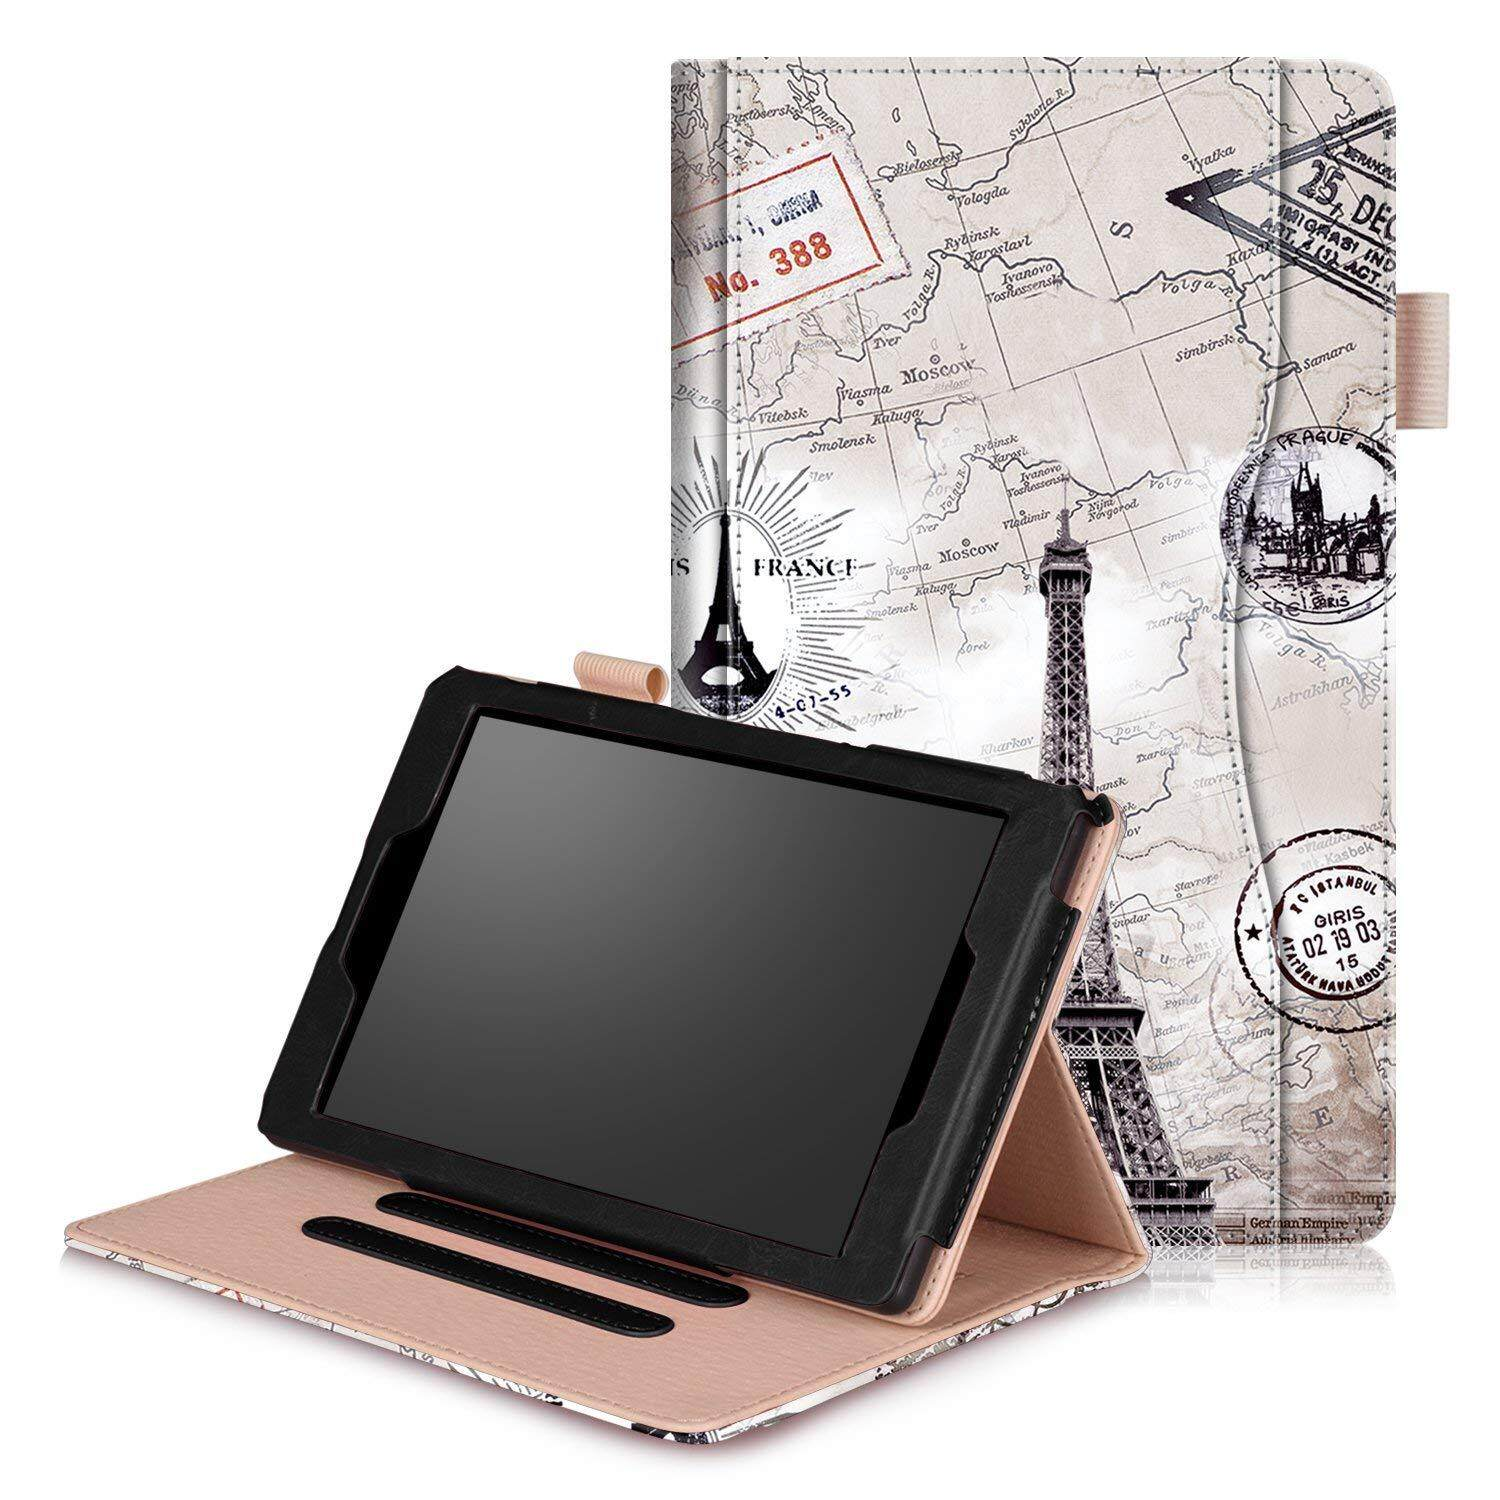 Discounts Up To 90 On Mobiles Tablets Only Lazada 2in1 Hybrid Armor Case Samsung Galaxy Tab A 70 2016 T285